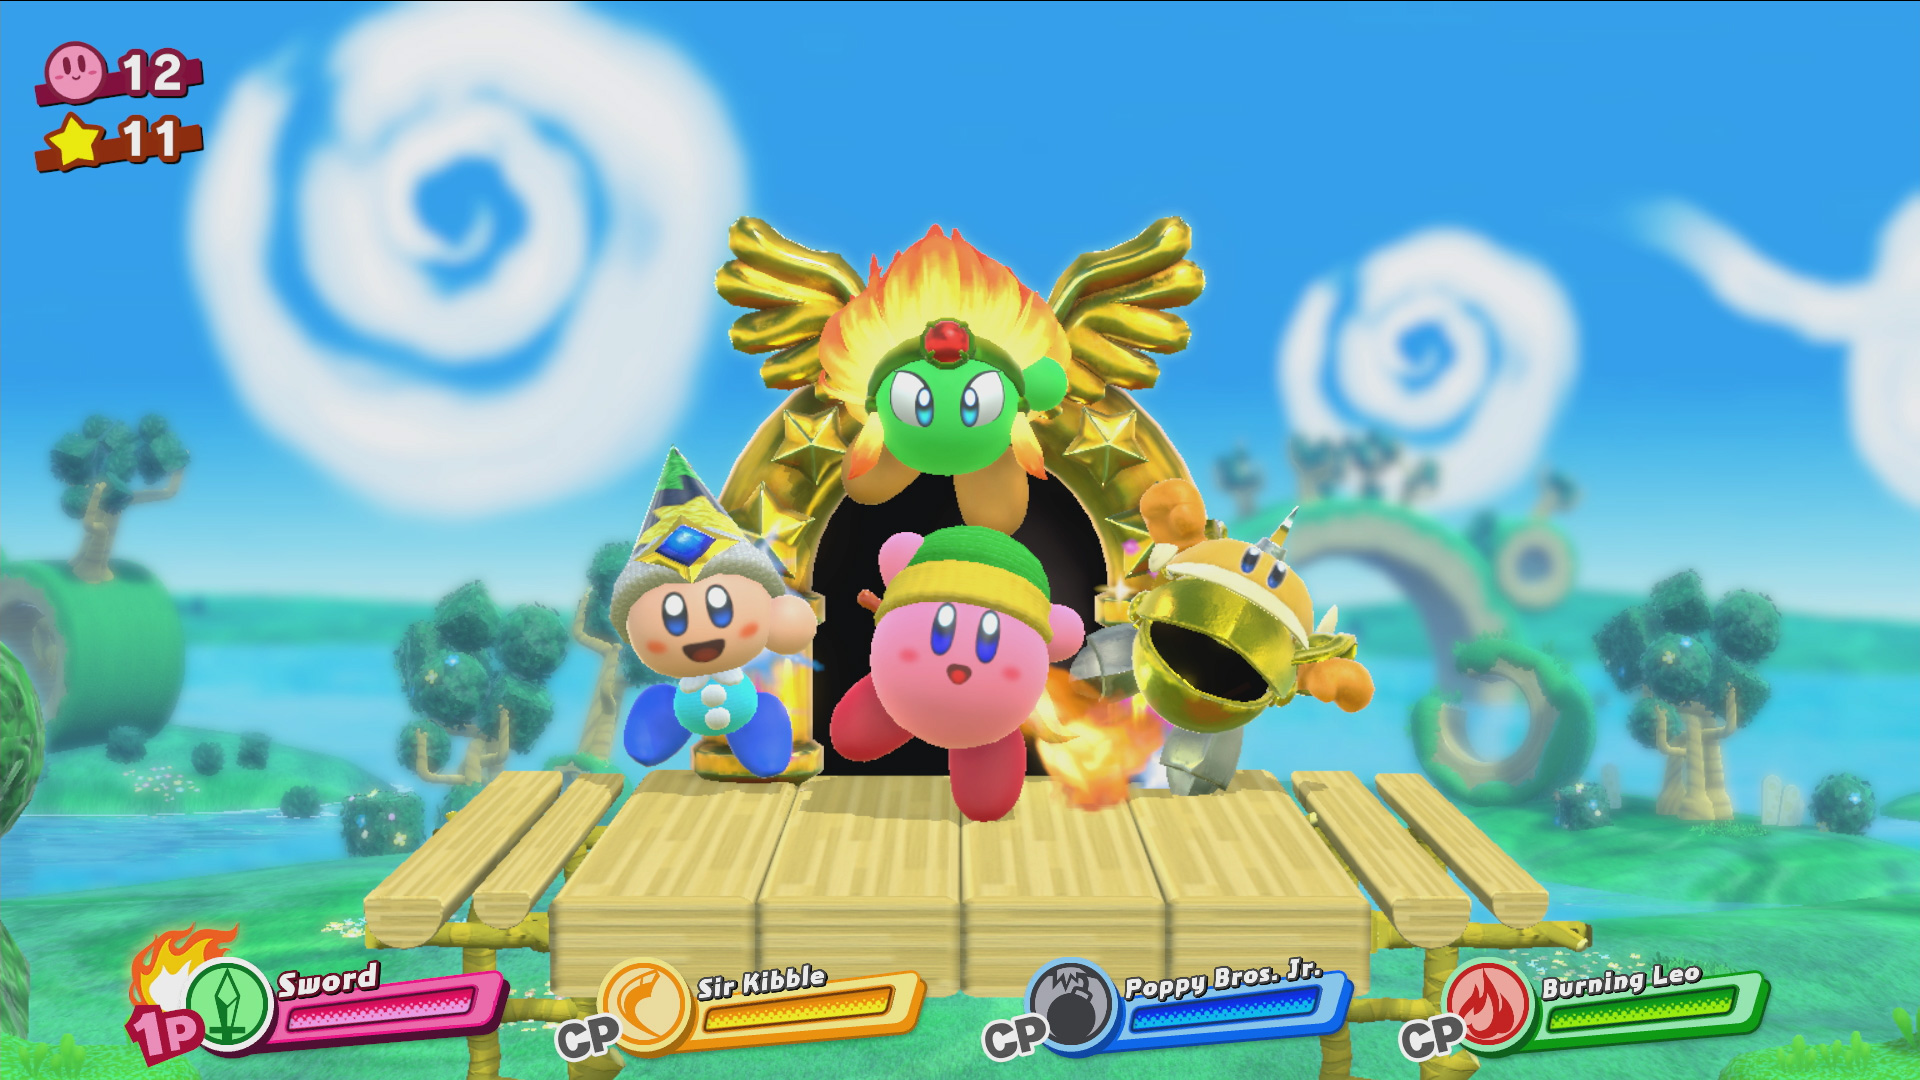 Remastered Kirby 64 Levels Coming to Star Allies